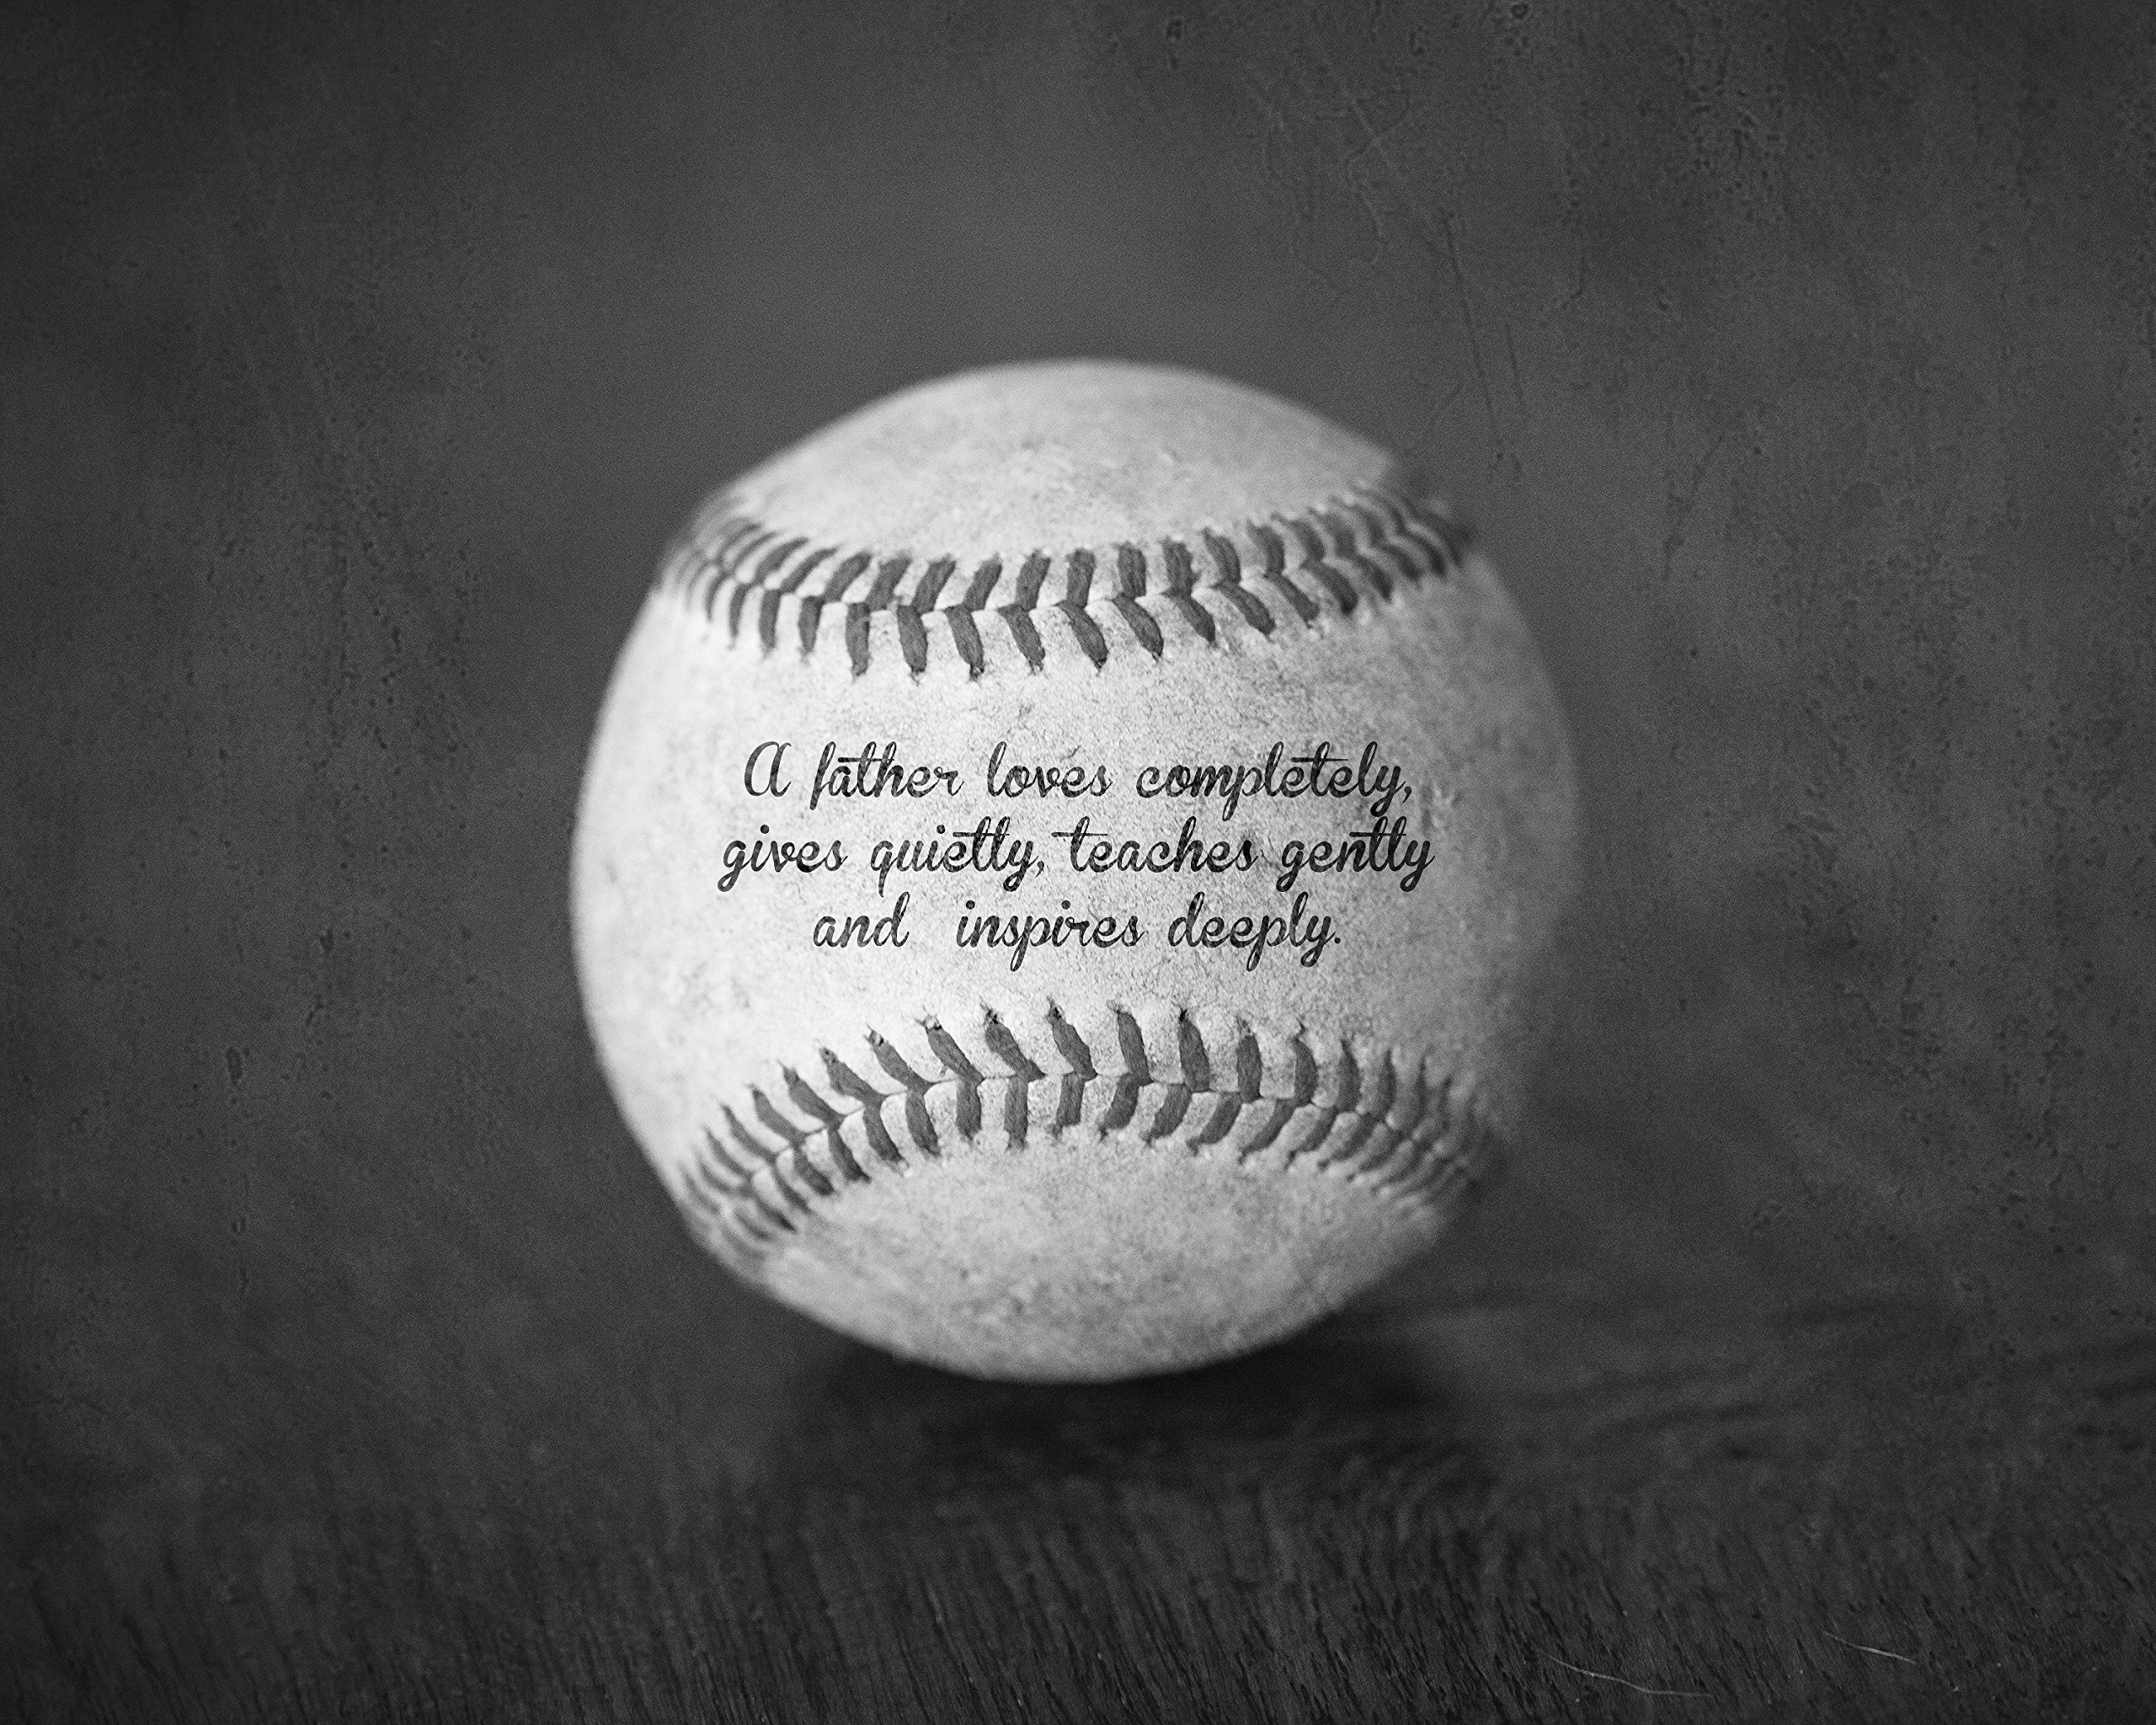 Baseball Sport Photo with Father Quote, Unique Home Decor Gift for Dad from Kids